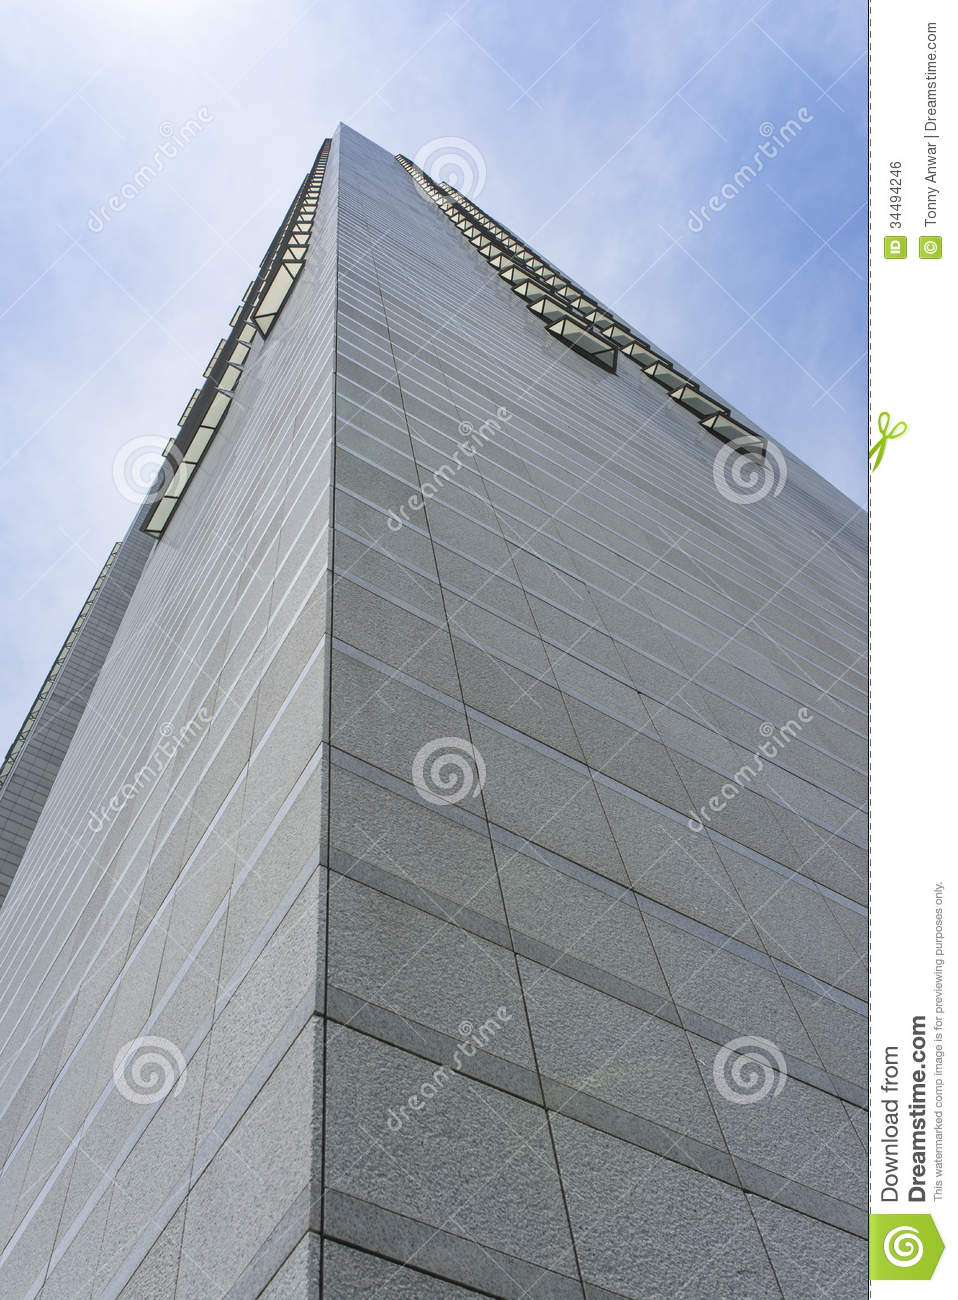 Commercial Building Stock Photo Image Of Granite Wall